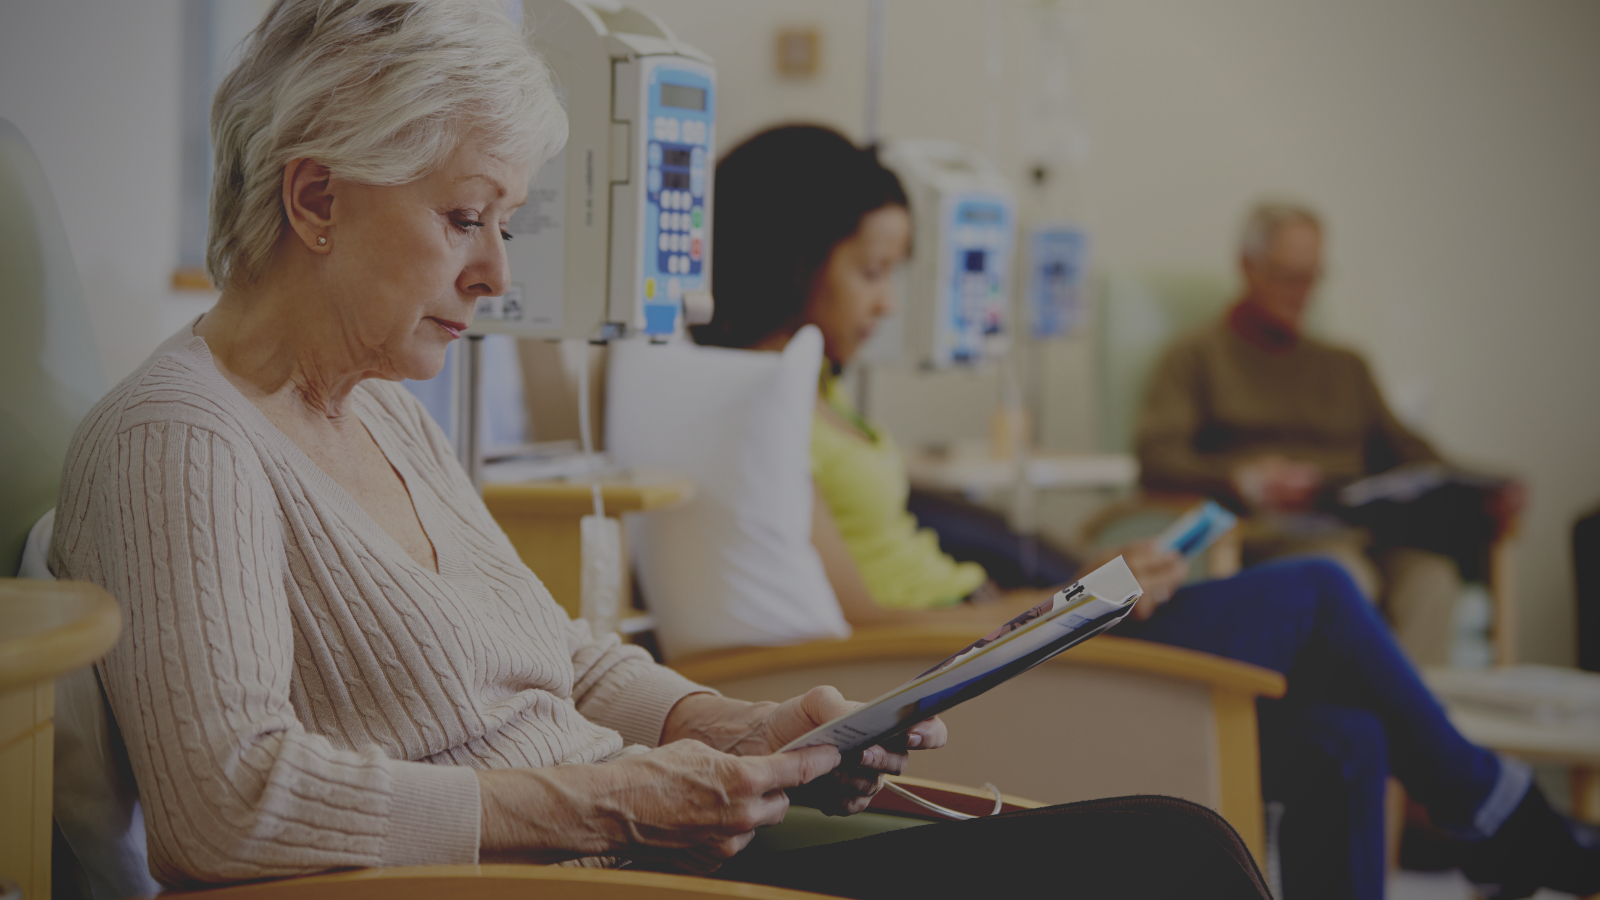 Enabling Patient-focused Trials with Decentralized eClinical Solutions